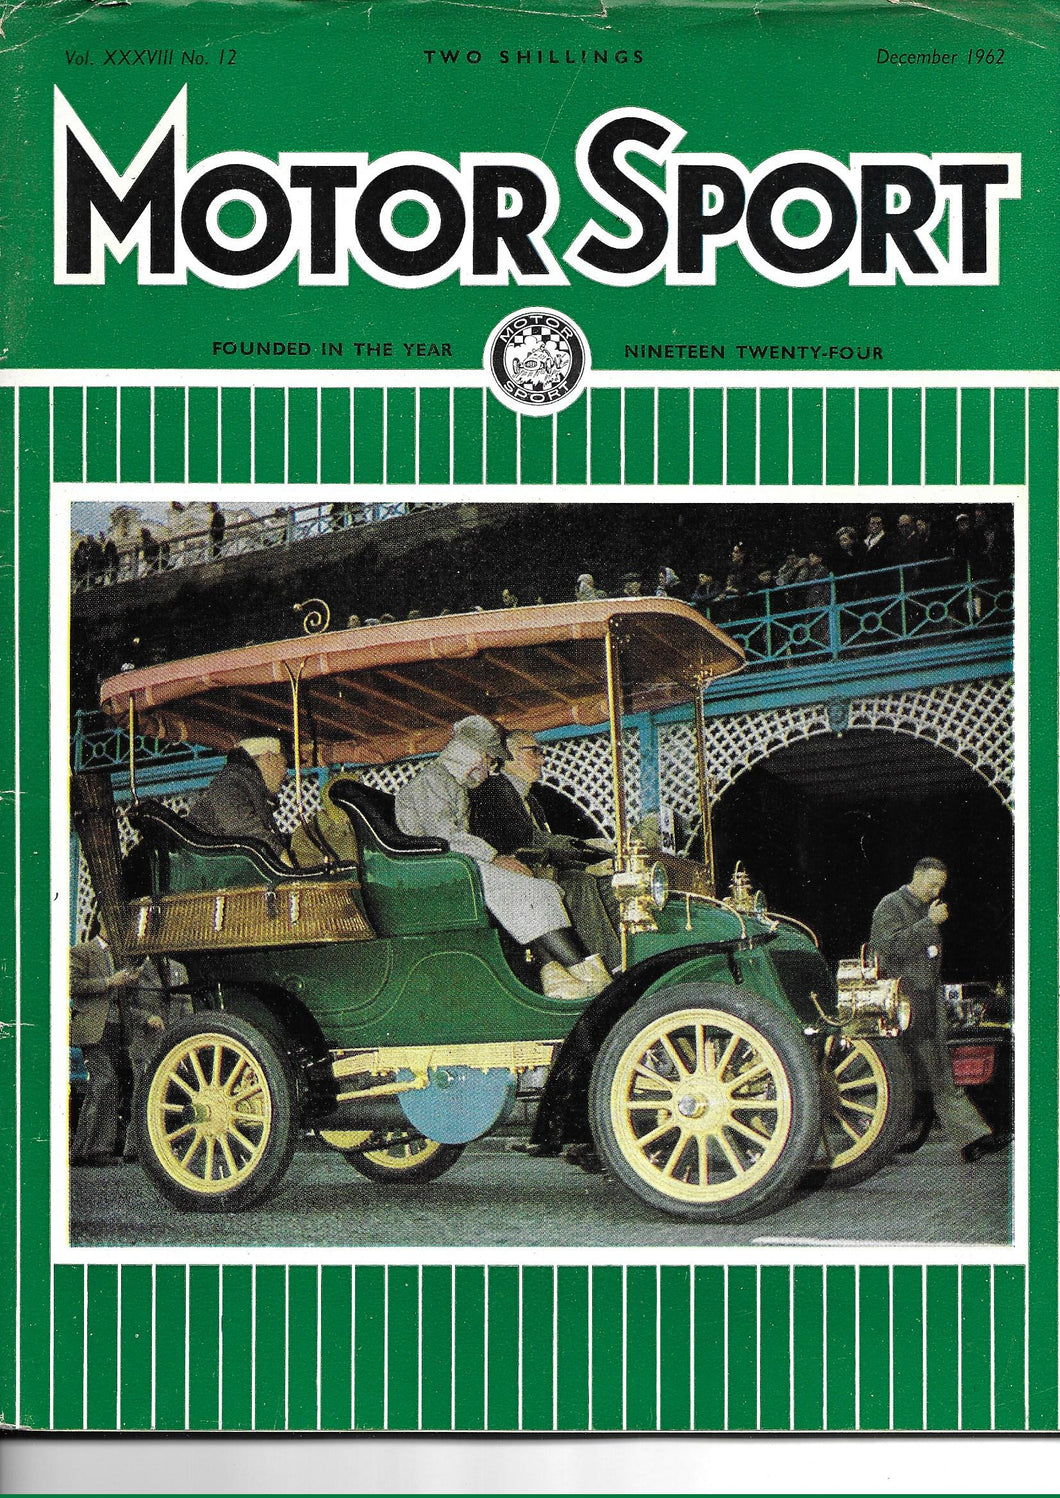 Motor Sport, Motorsport, Magazine, Vol XXXVIII No 12, December 1962, Loose Cover